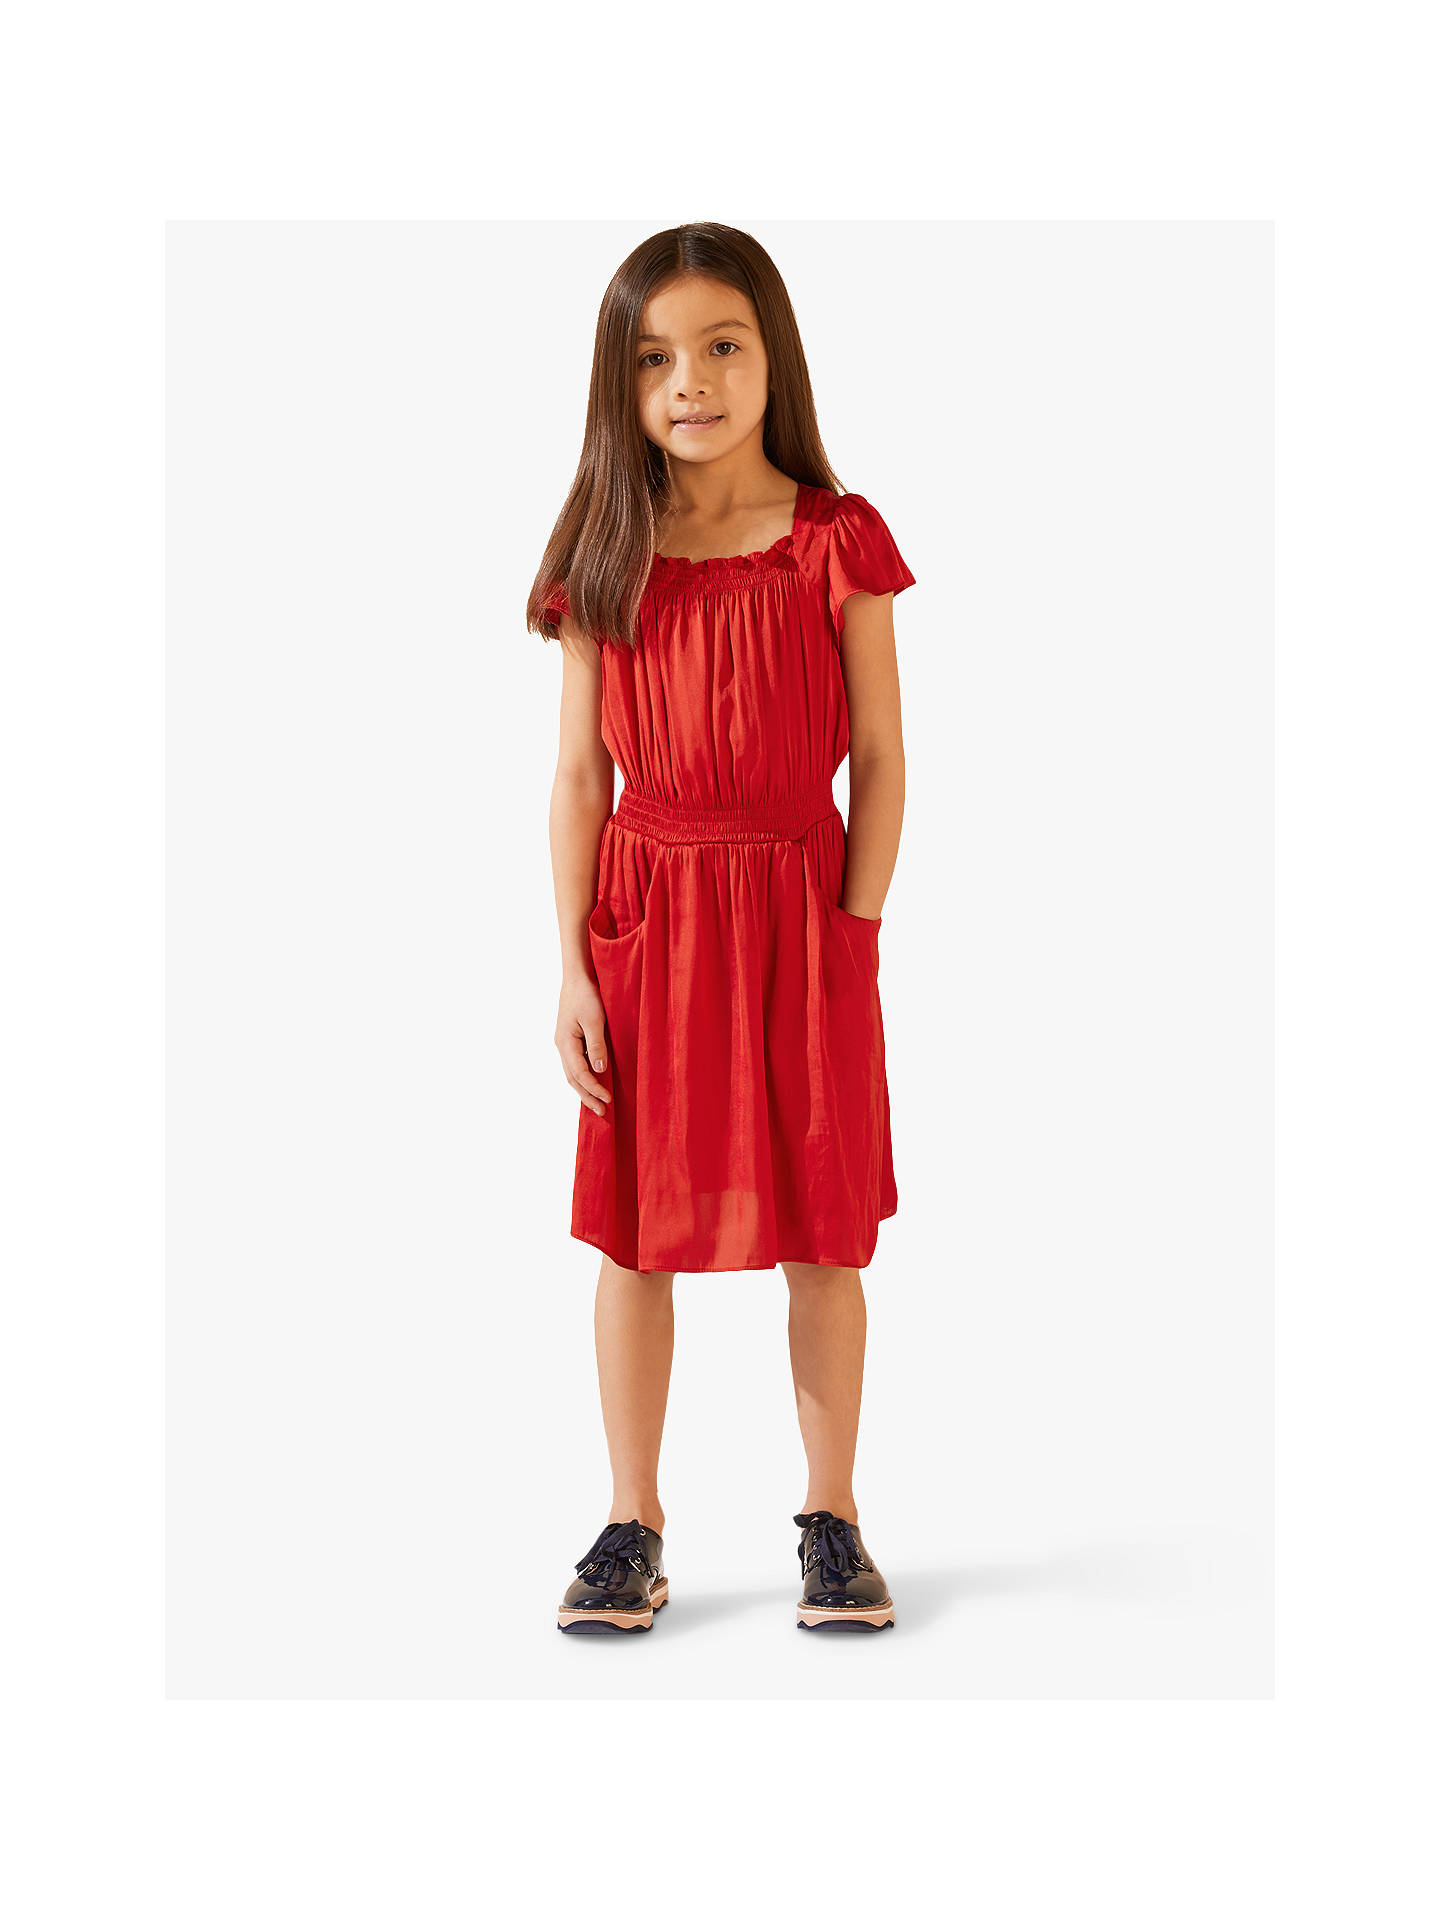 c4f4182e4708e Jigsaw Girls' Silky Shirred Dress, Red at John Lewis & Partners